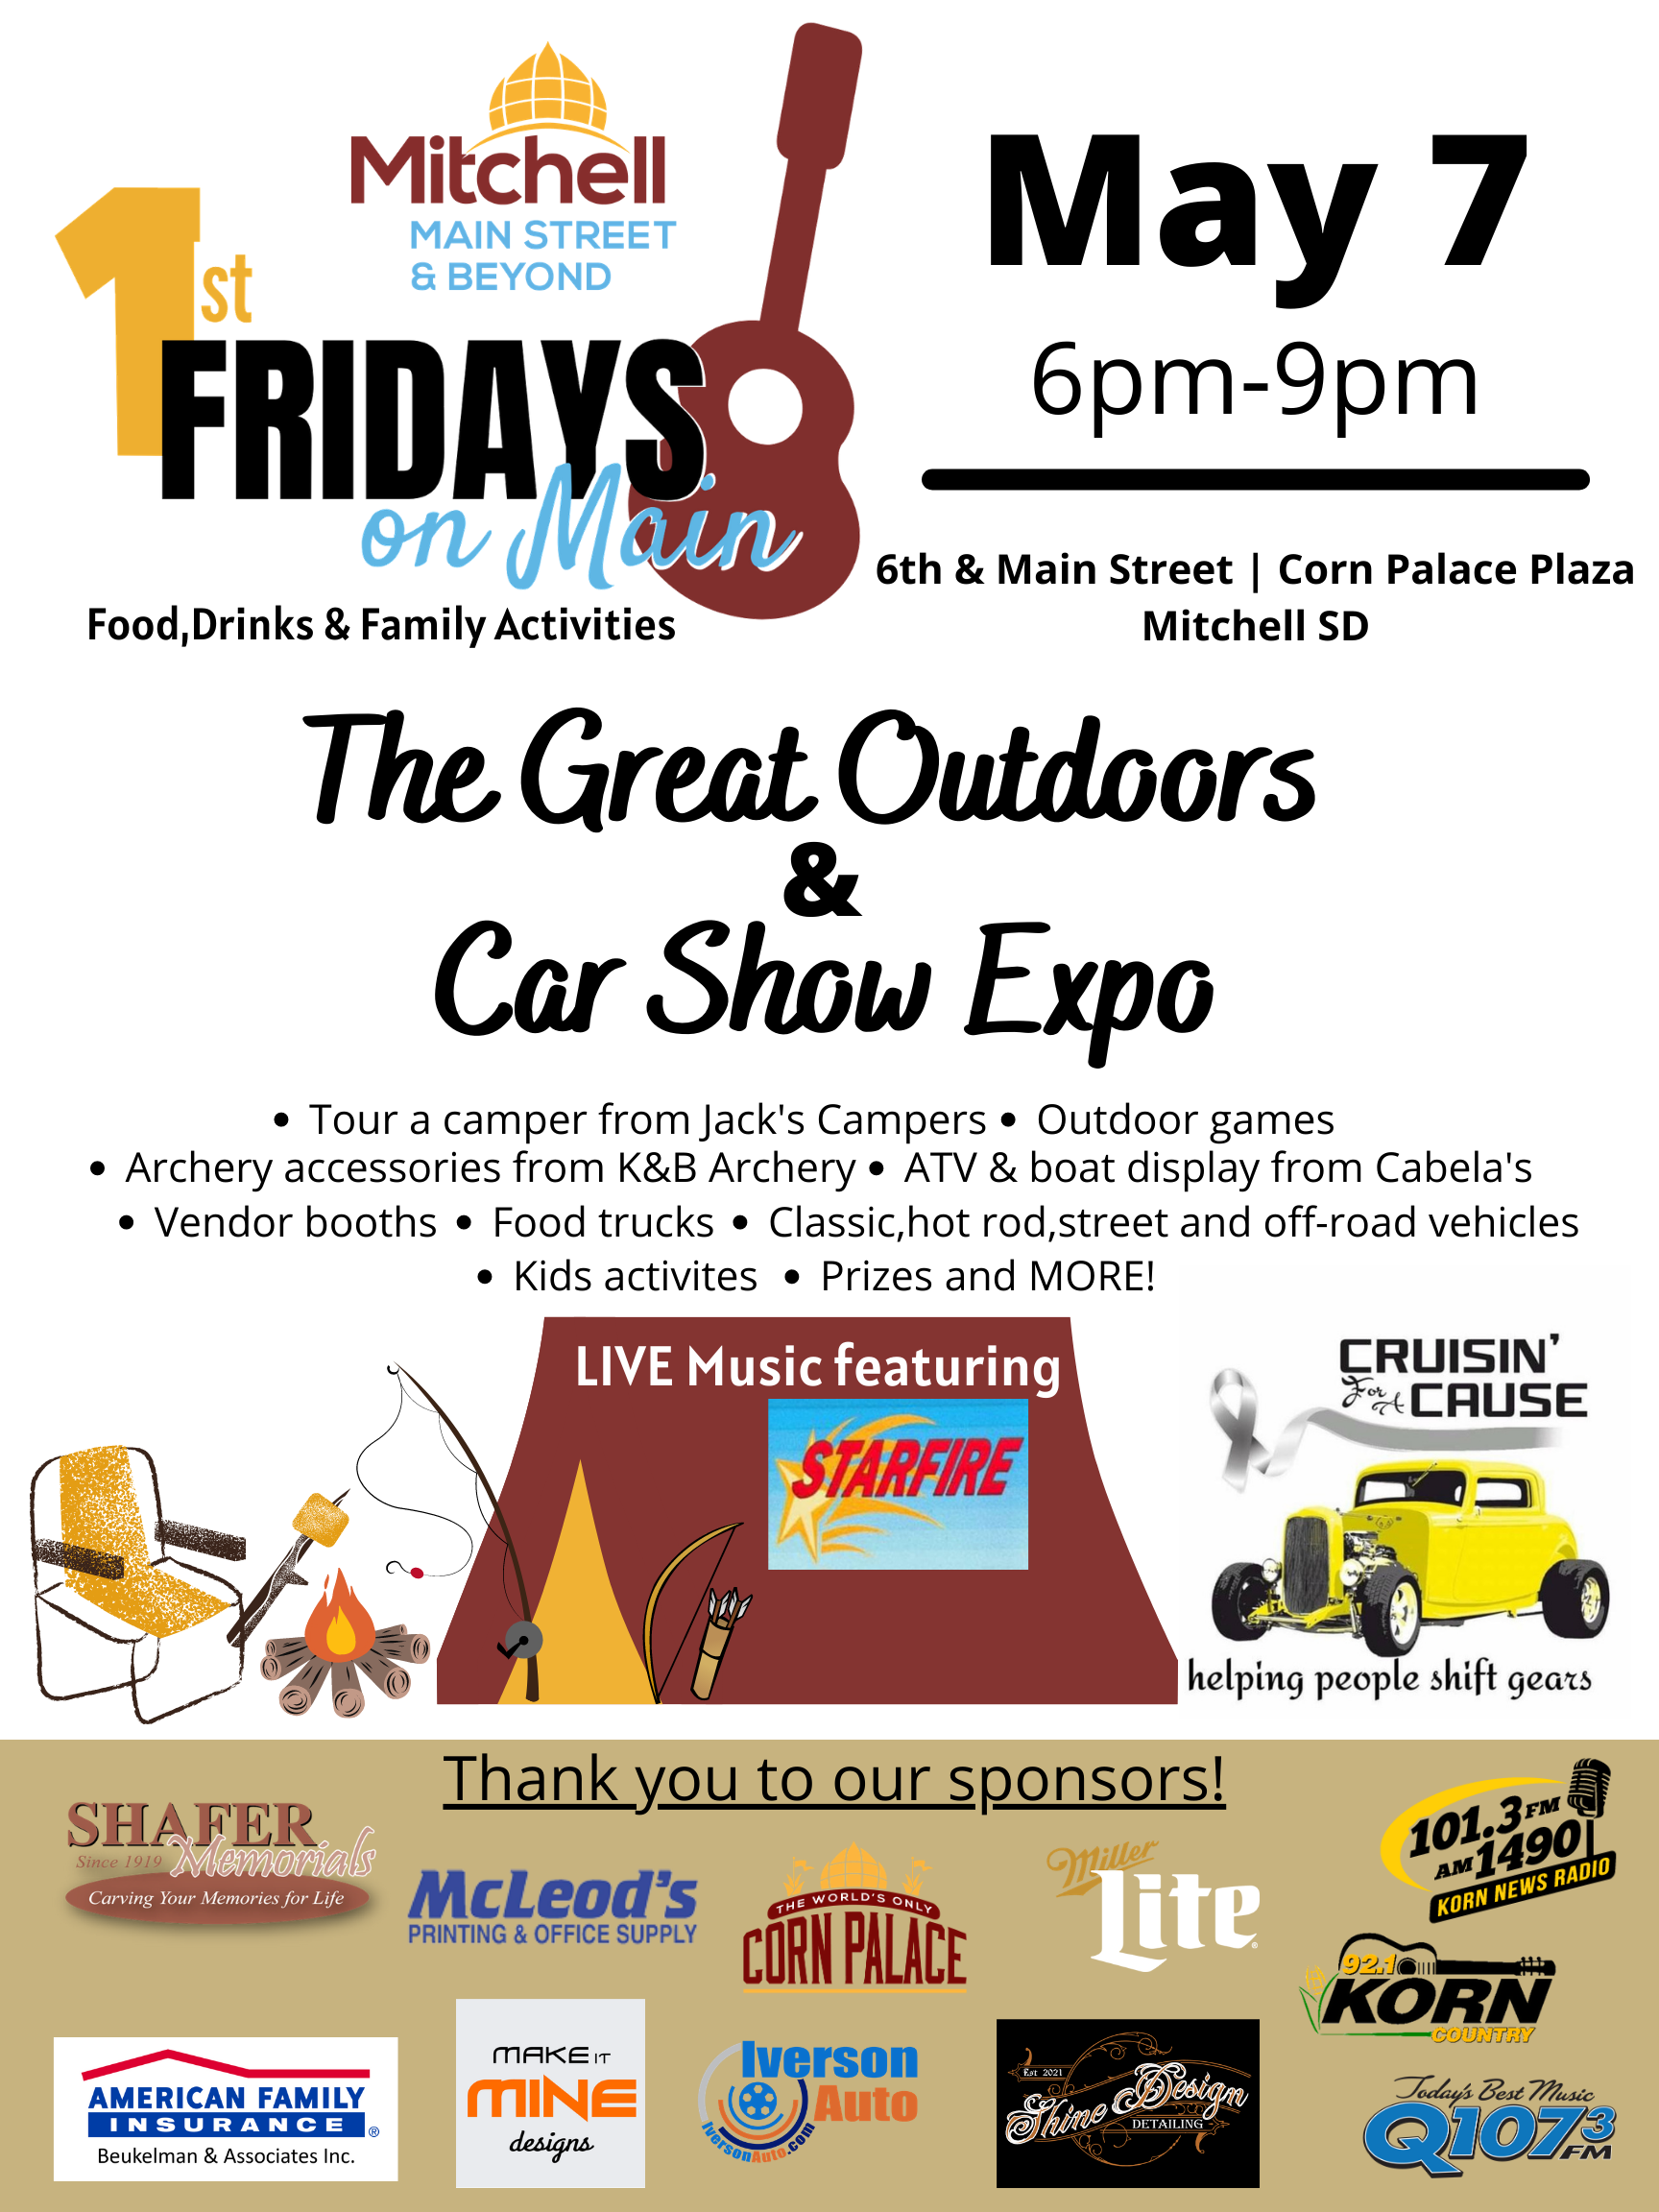 The-Great-Outdoors-and-Car-Show-Expo-May-2021-1st-Fridays-poster-2.png